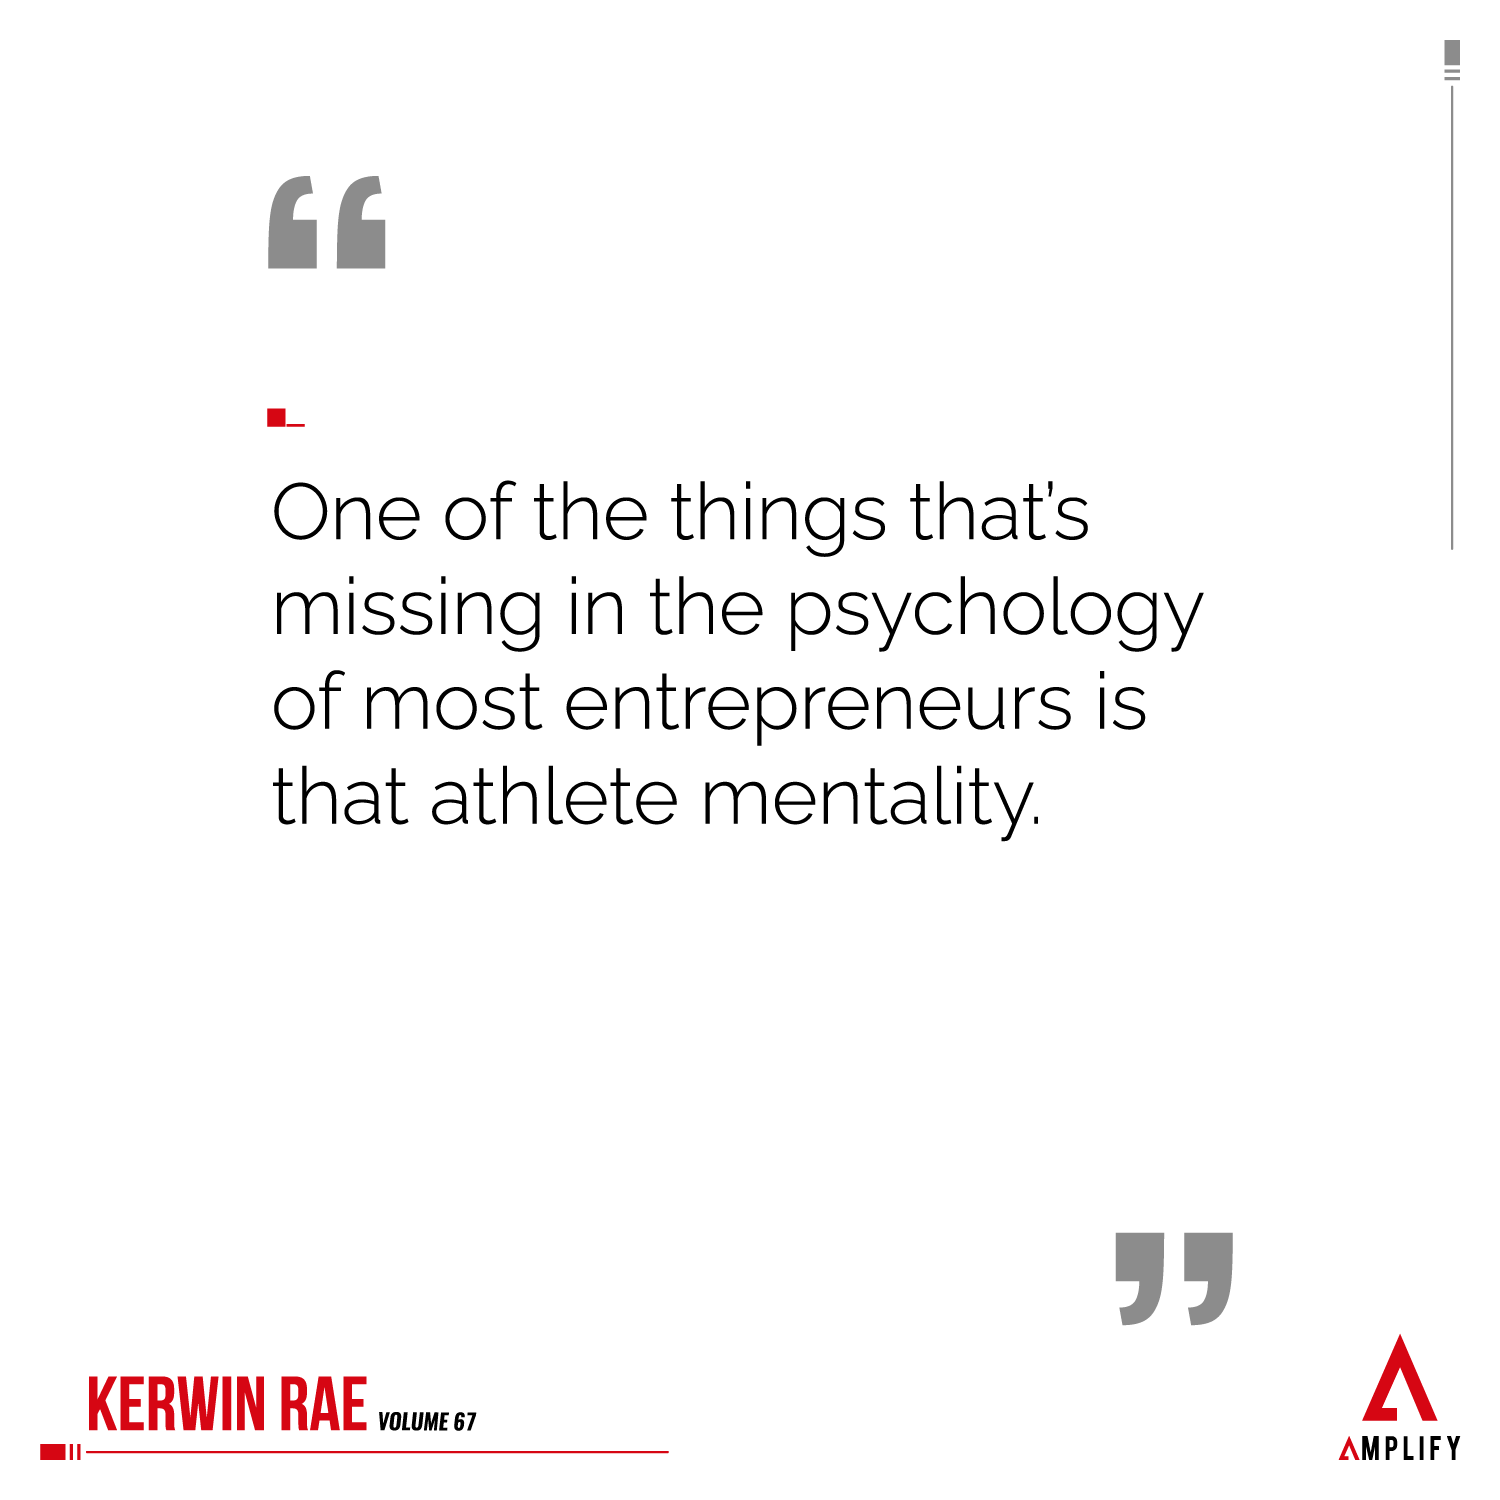 omage with the quote: One of the things that's missing in the psychology of most entrepreneurs is that athlete mentality.